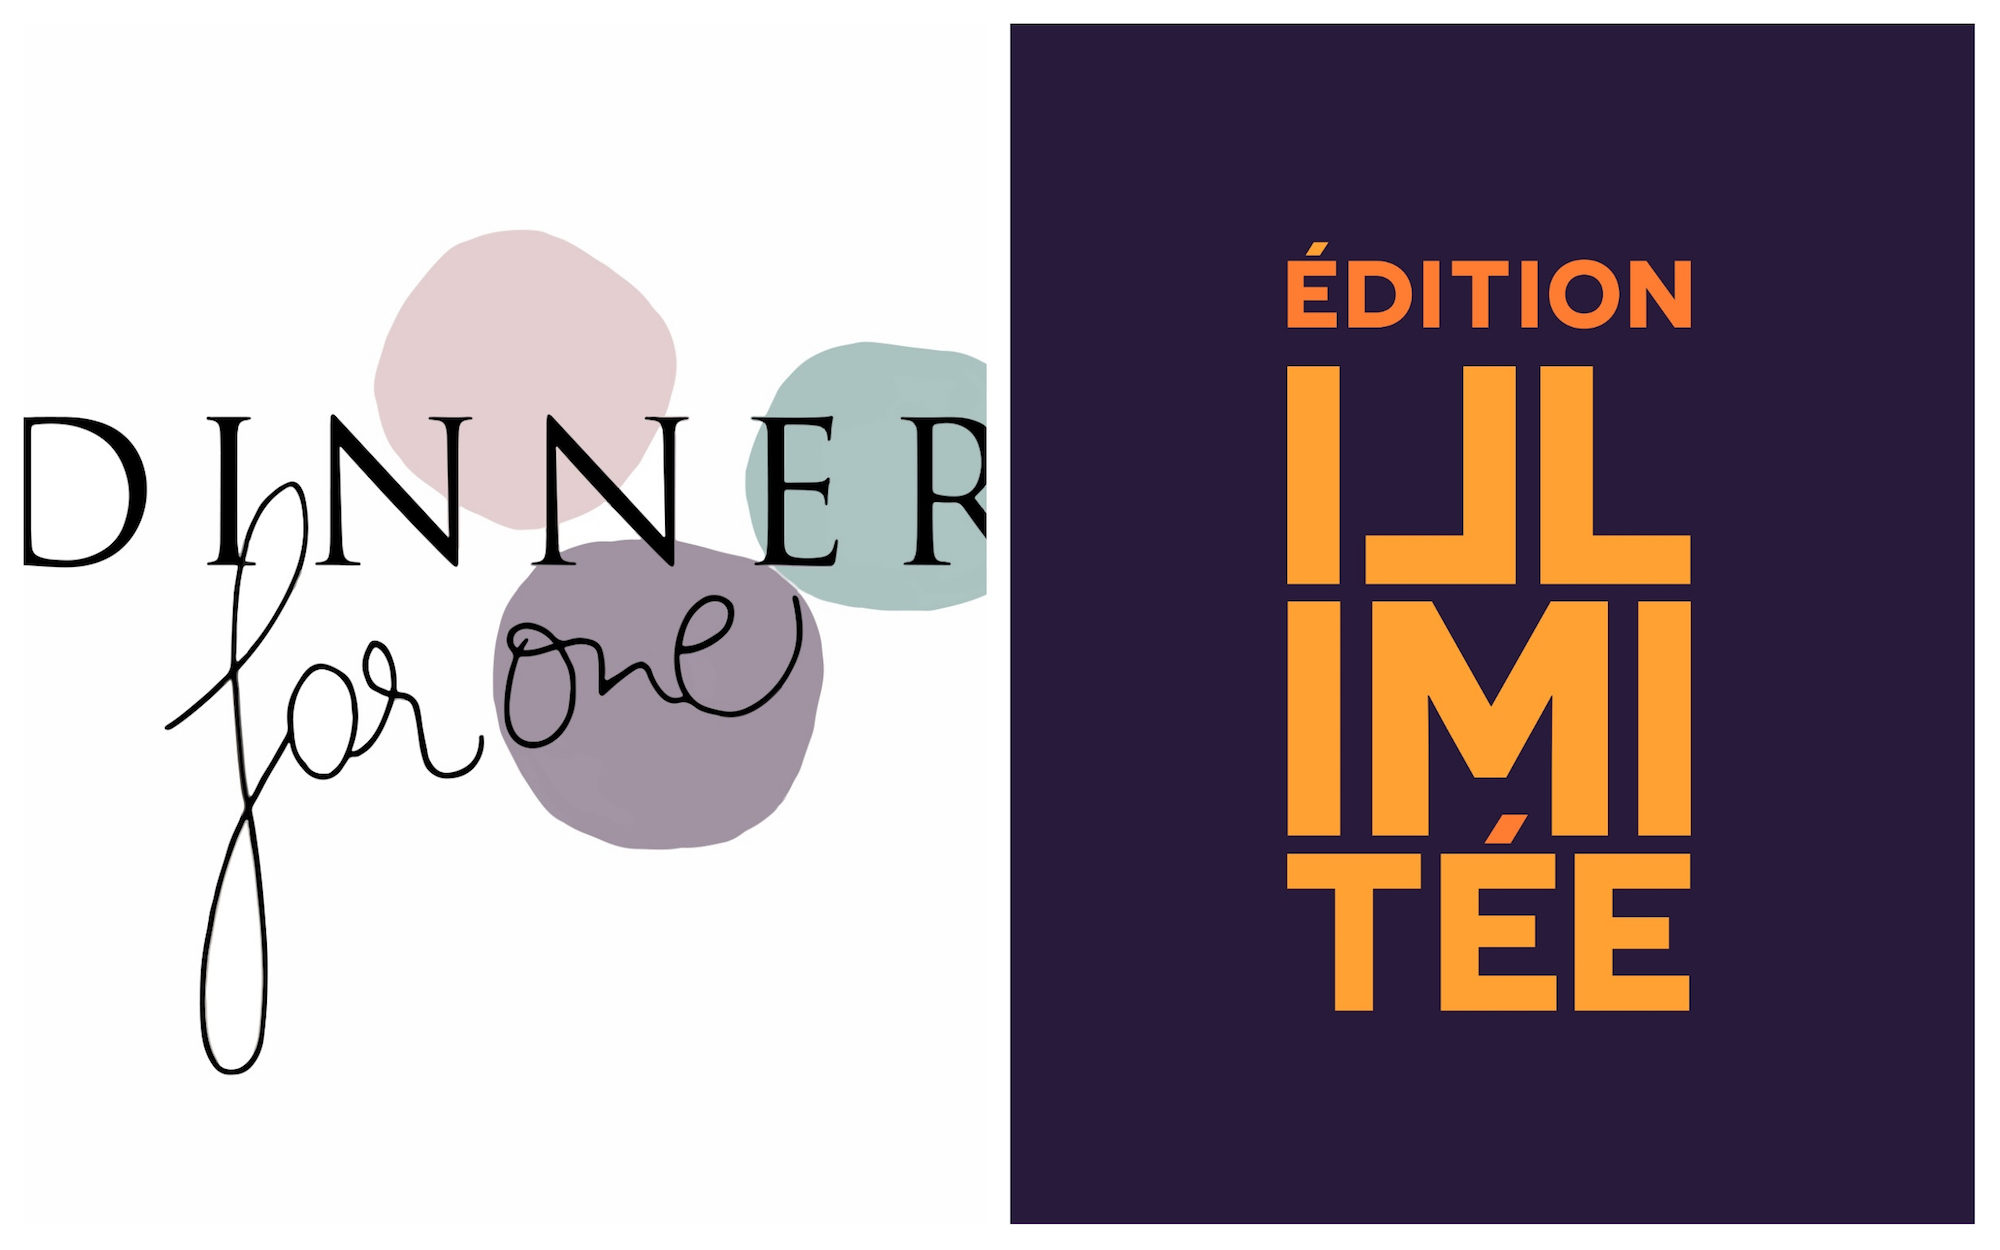 HiP Paris Blog rounds up the best French podcasts to listen to this summer like Dinner for One (left) and Edition Illimitée (right).